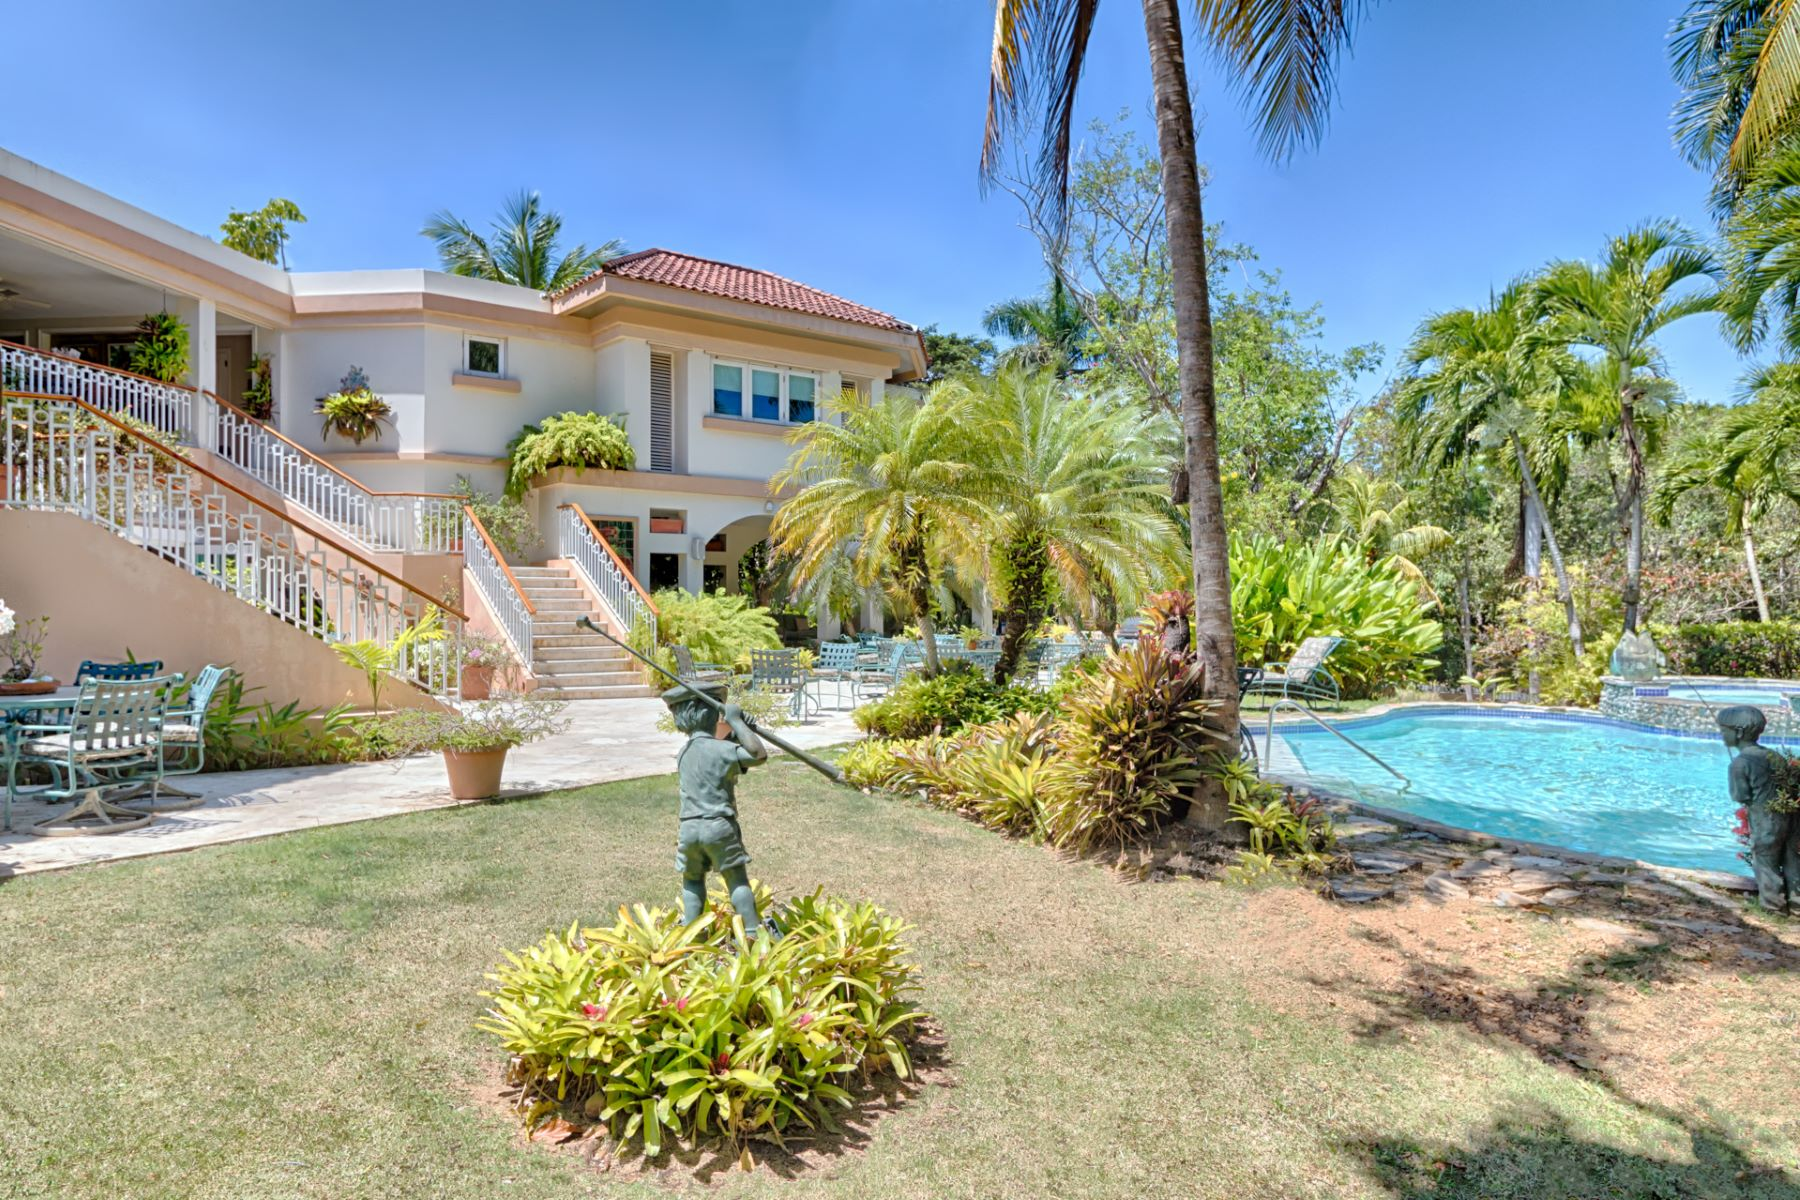 Additional photo for property listing at 15 Dorado Beach Estates  Dorado Beach, Puerto Rico 00646 푸에르토리코